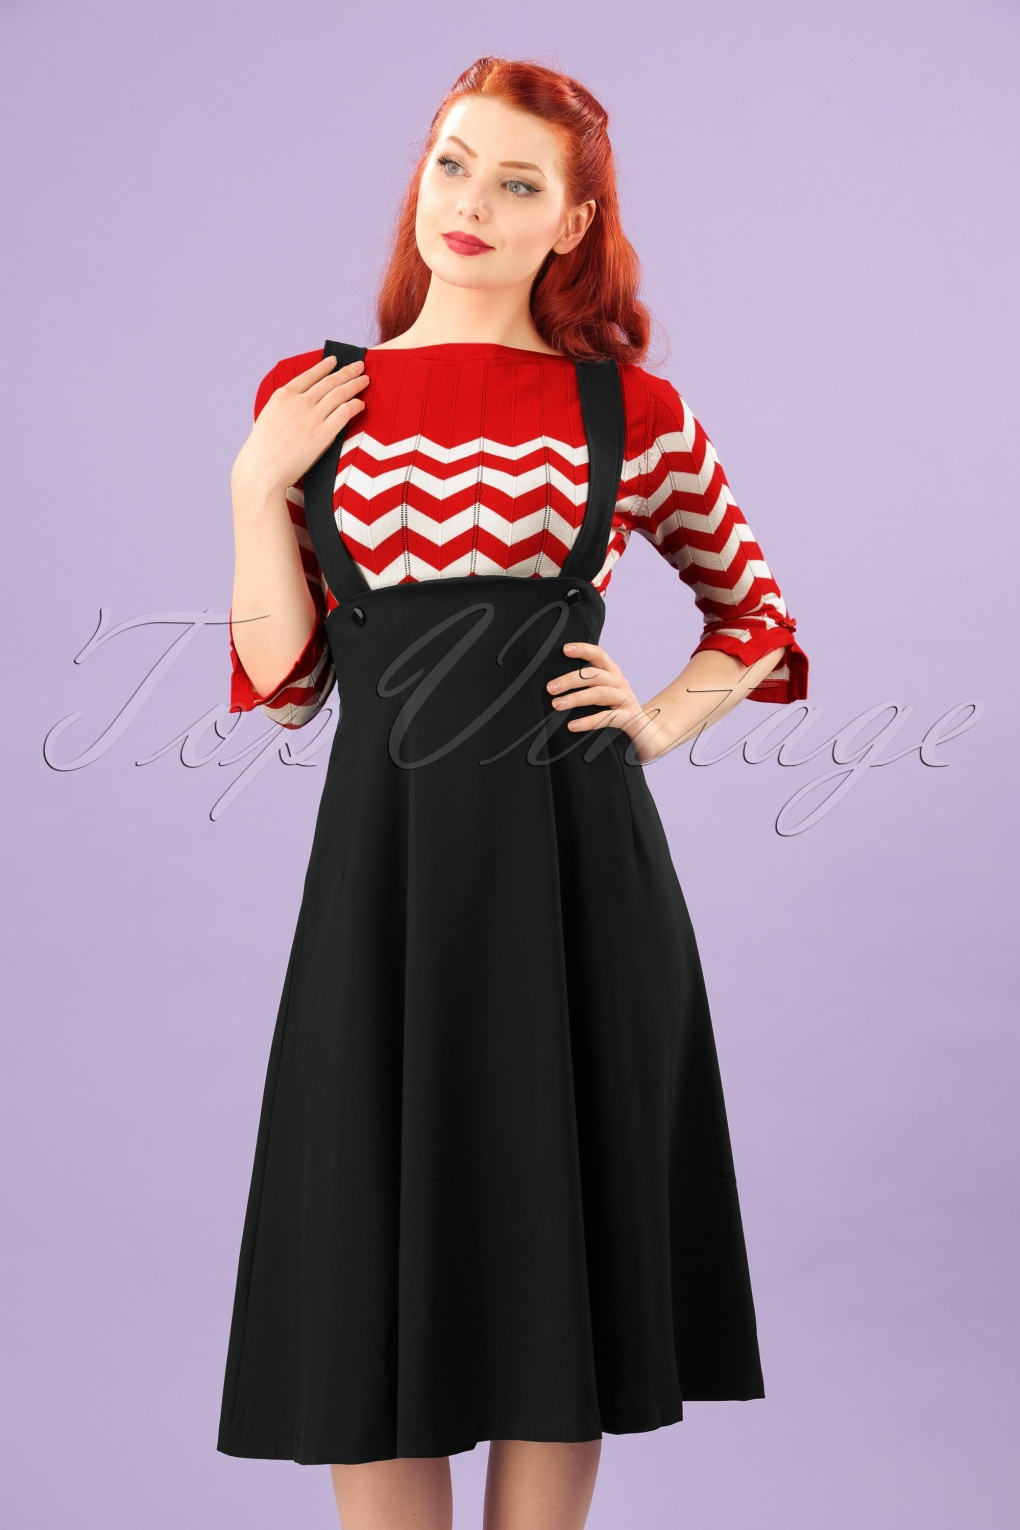 Retro Skirts: Vintage, Pencil, Circle, & Plus Sizes 50s Jumper Swing Skirt in Black £84.12 AT vintagedancer.com